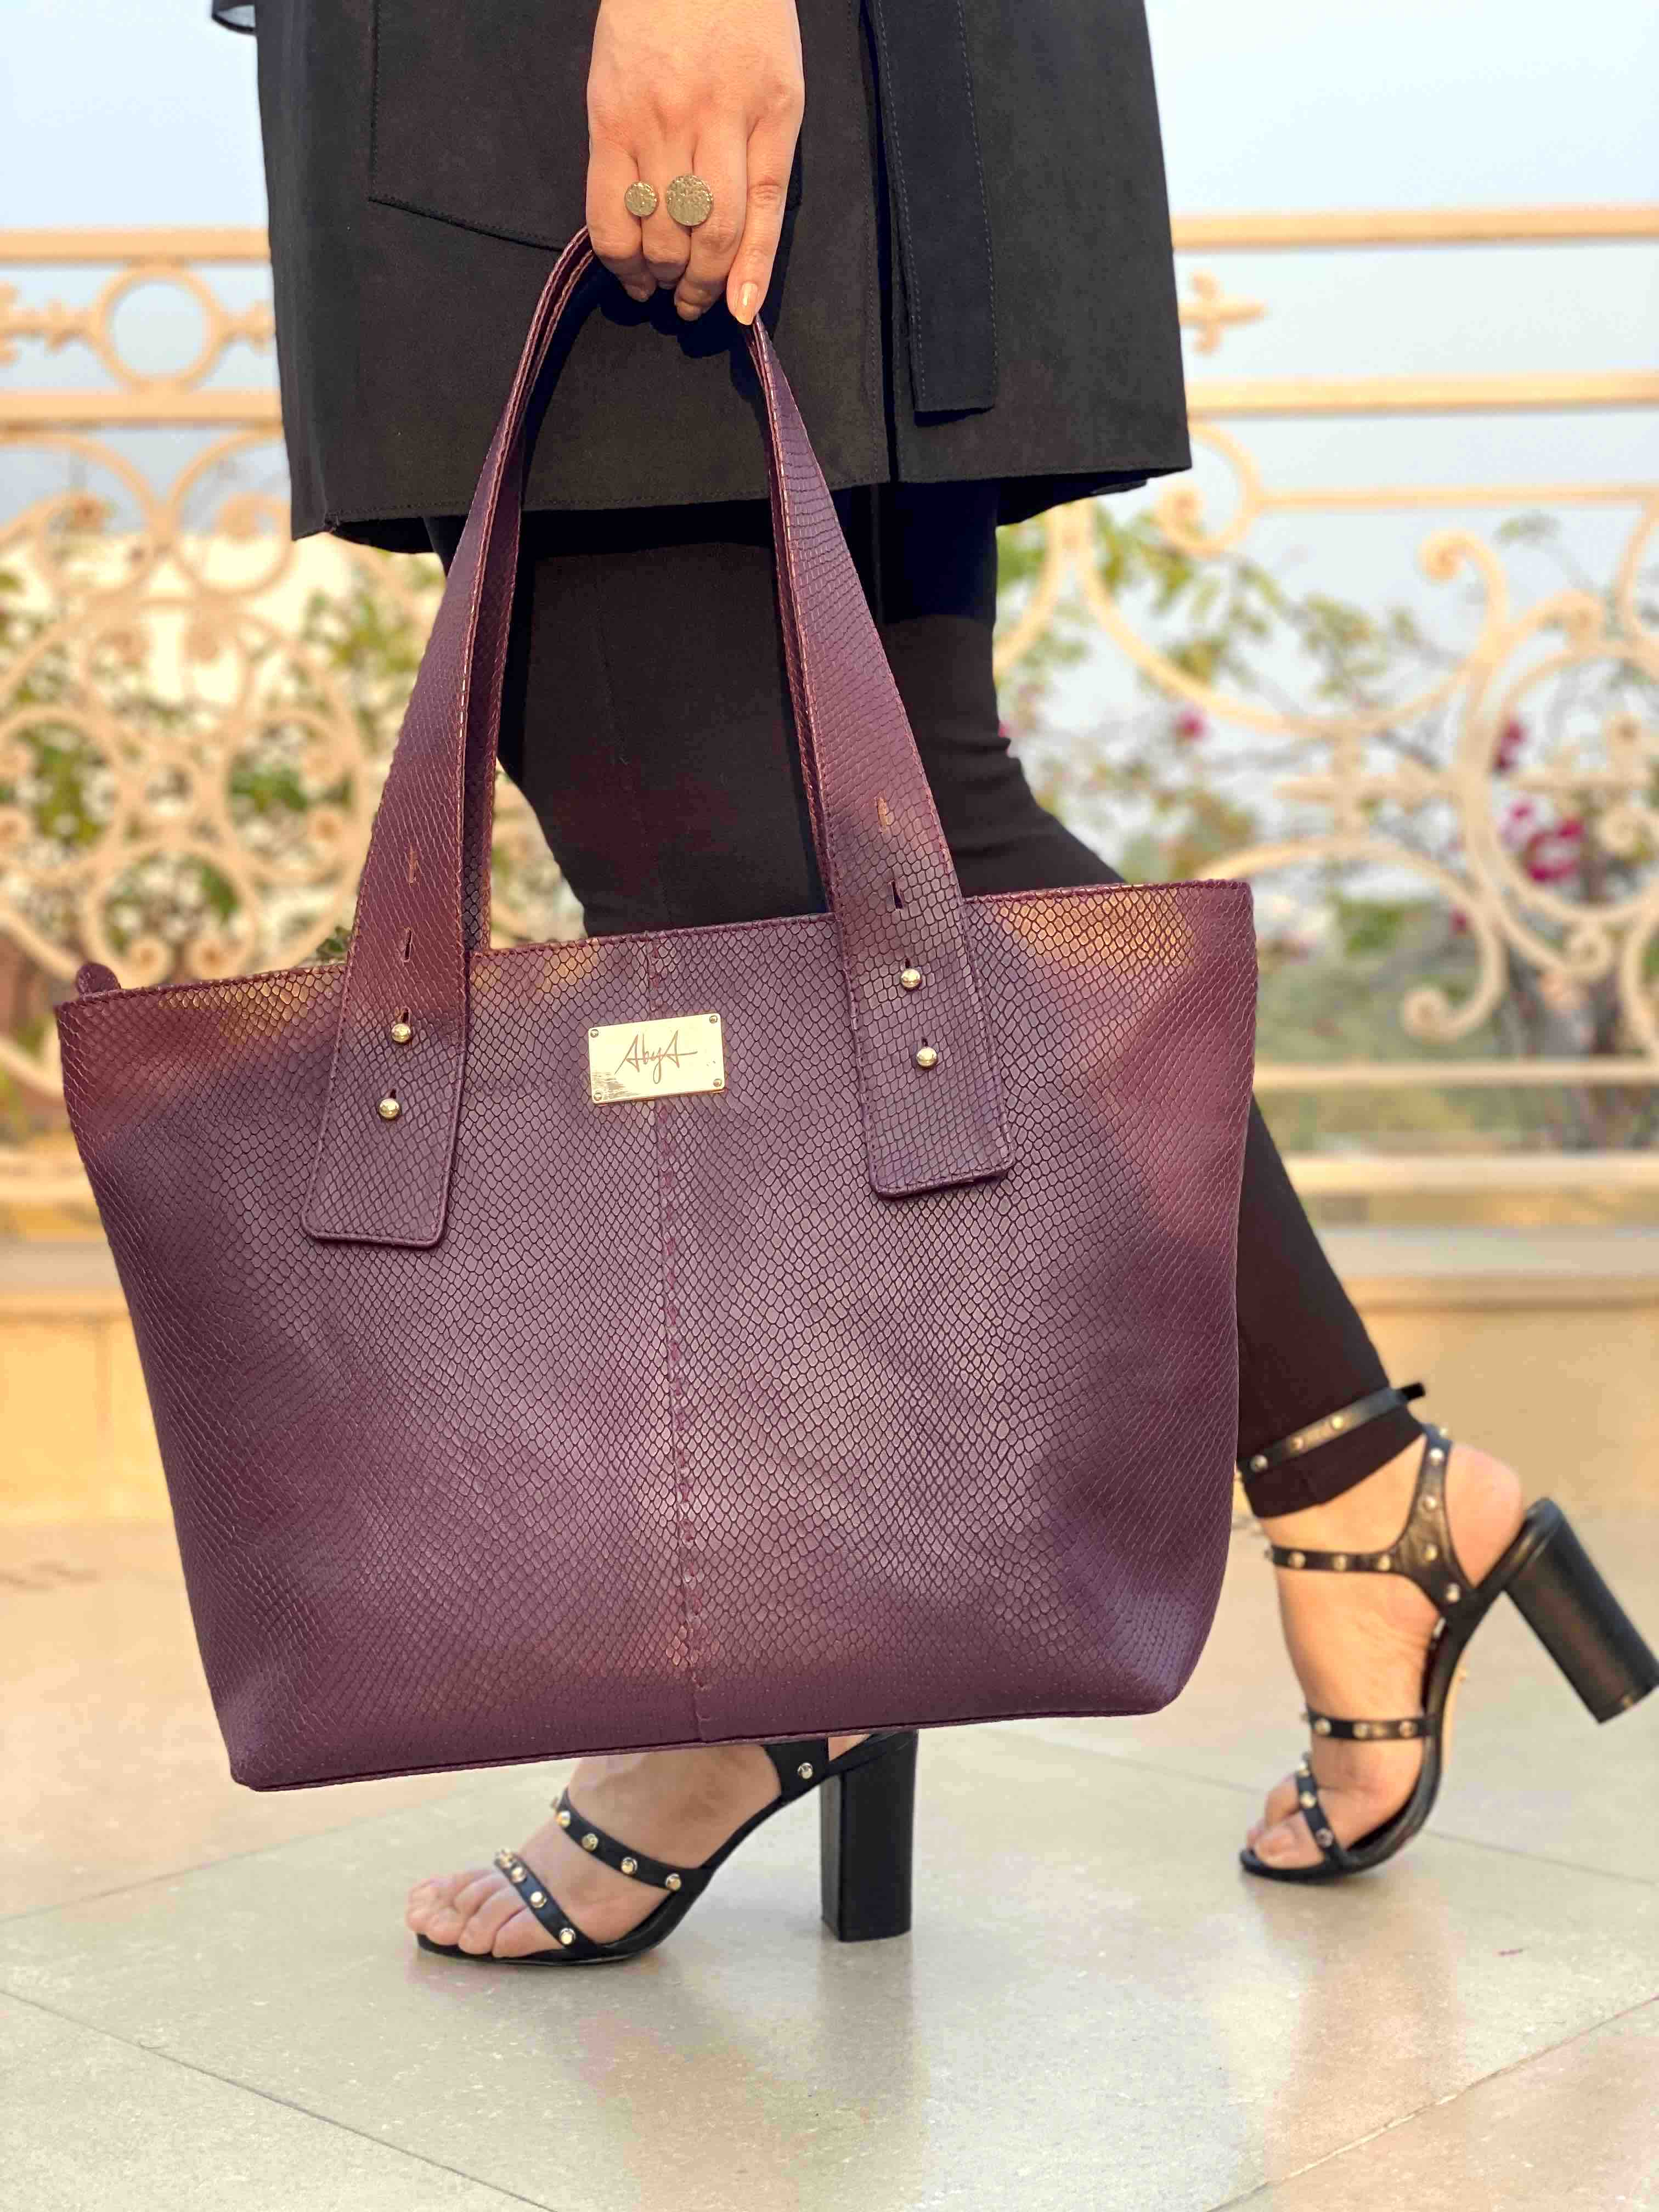 MULBERRY TOTE BAG image 4